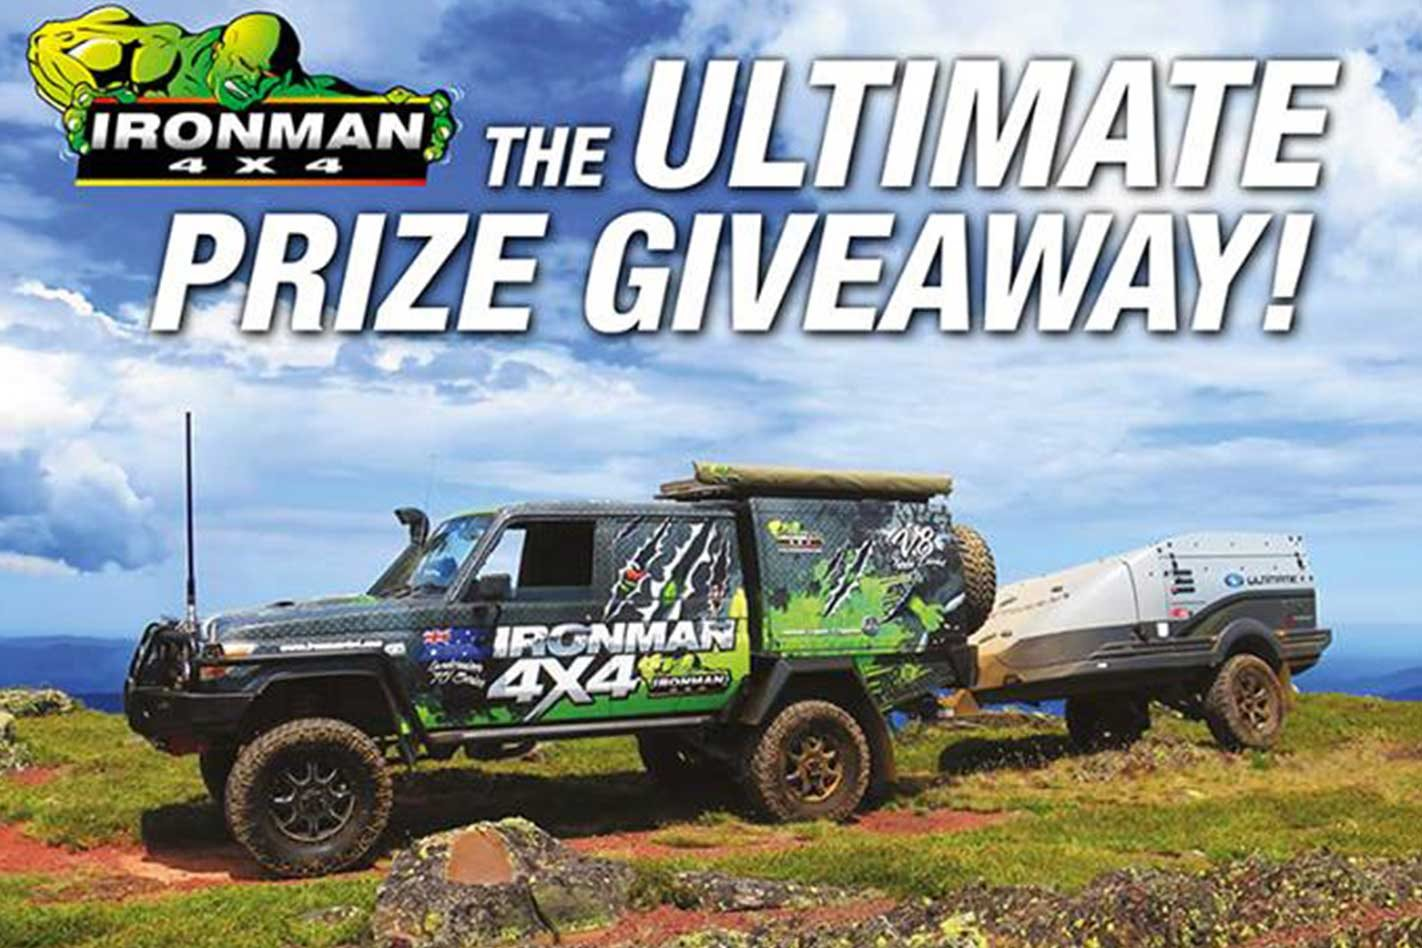 4x4 giveaway